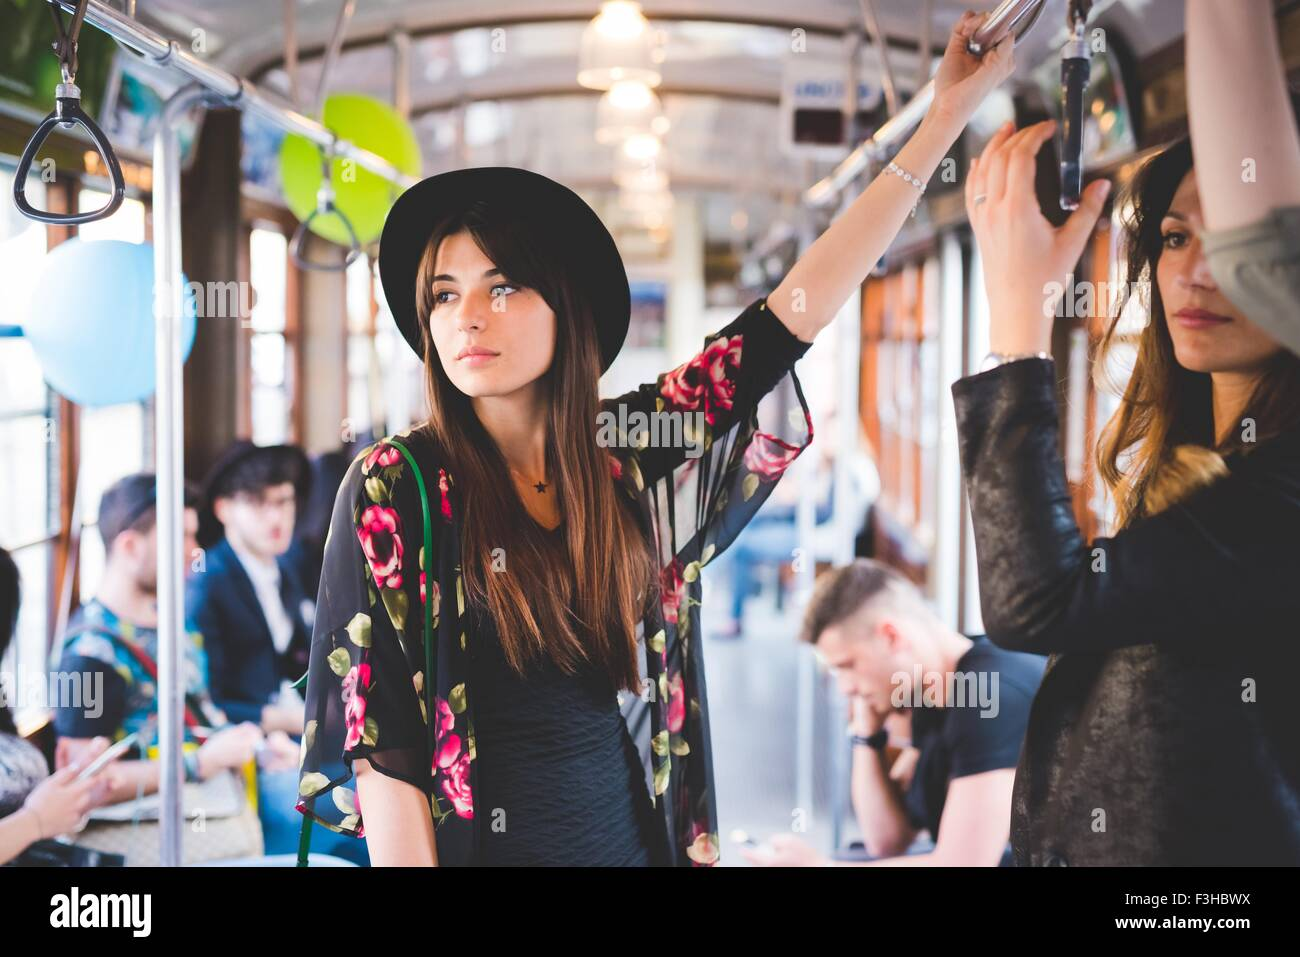 Young woman travelling on city tram - Stock Image